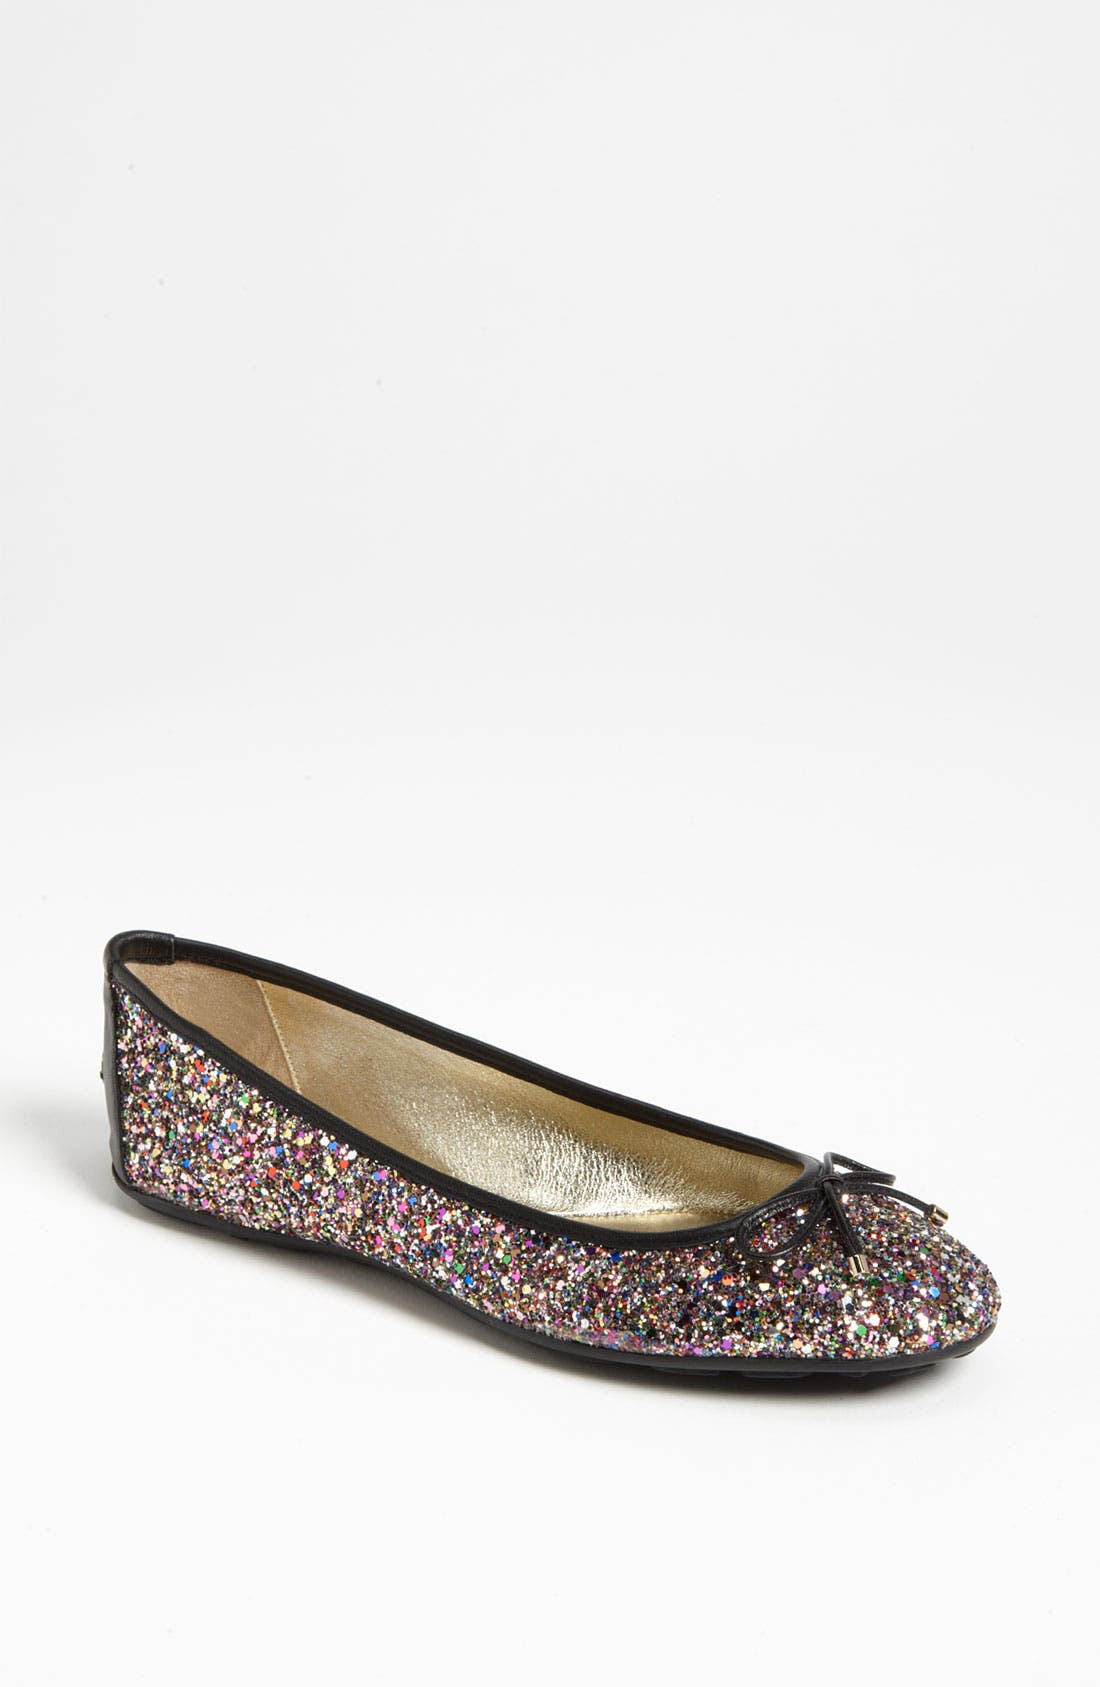 Alternate Image 1 Selected - Jimmy Choo 'Walsh' Glitter Flat